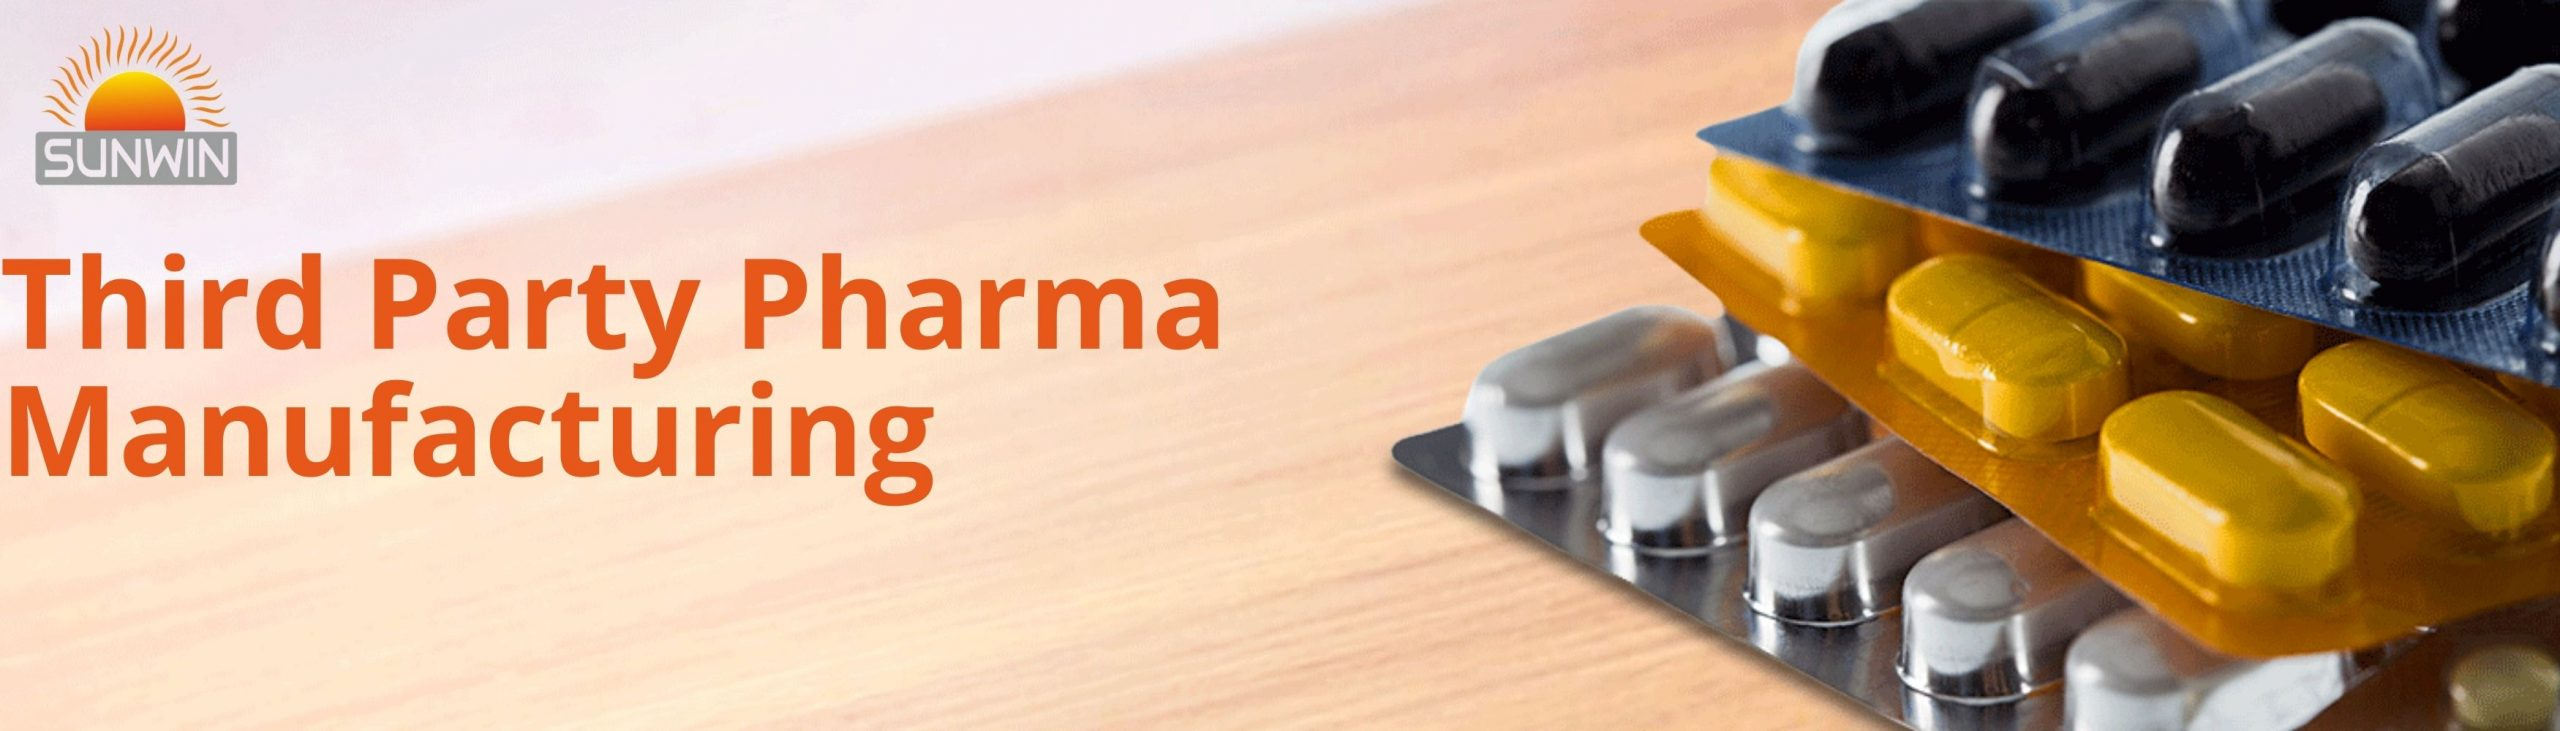 Third Party Pharma Manufacturing Services in Sikkim